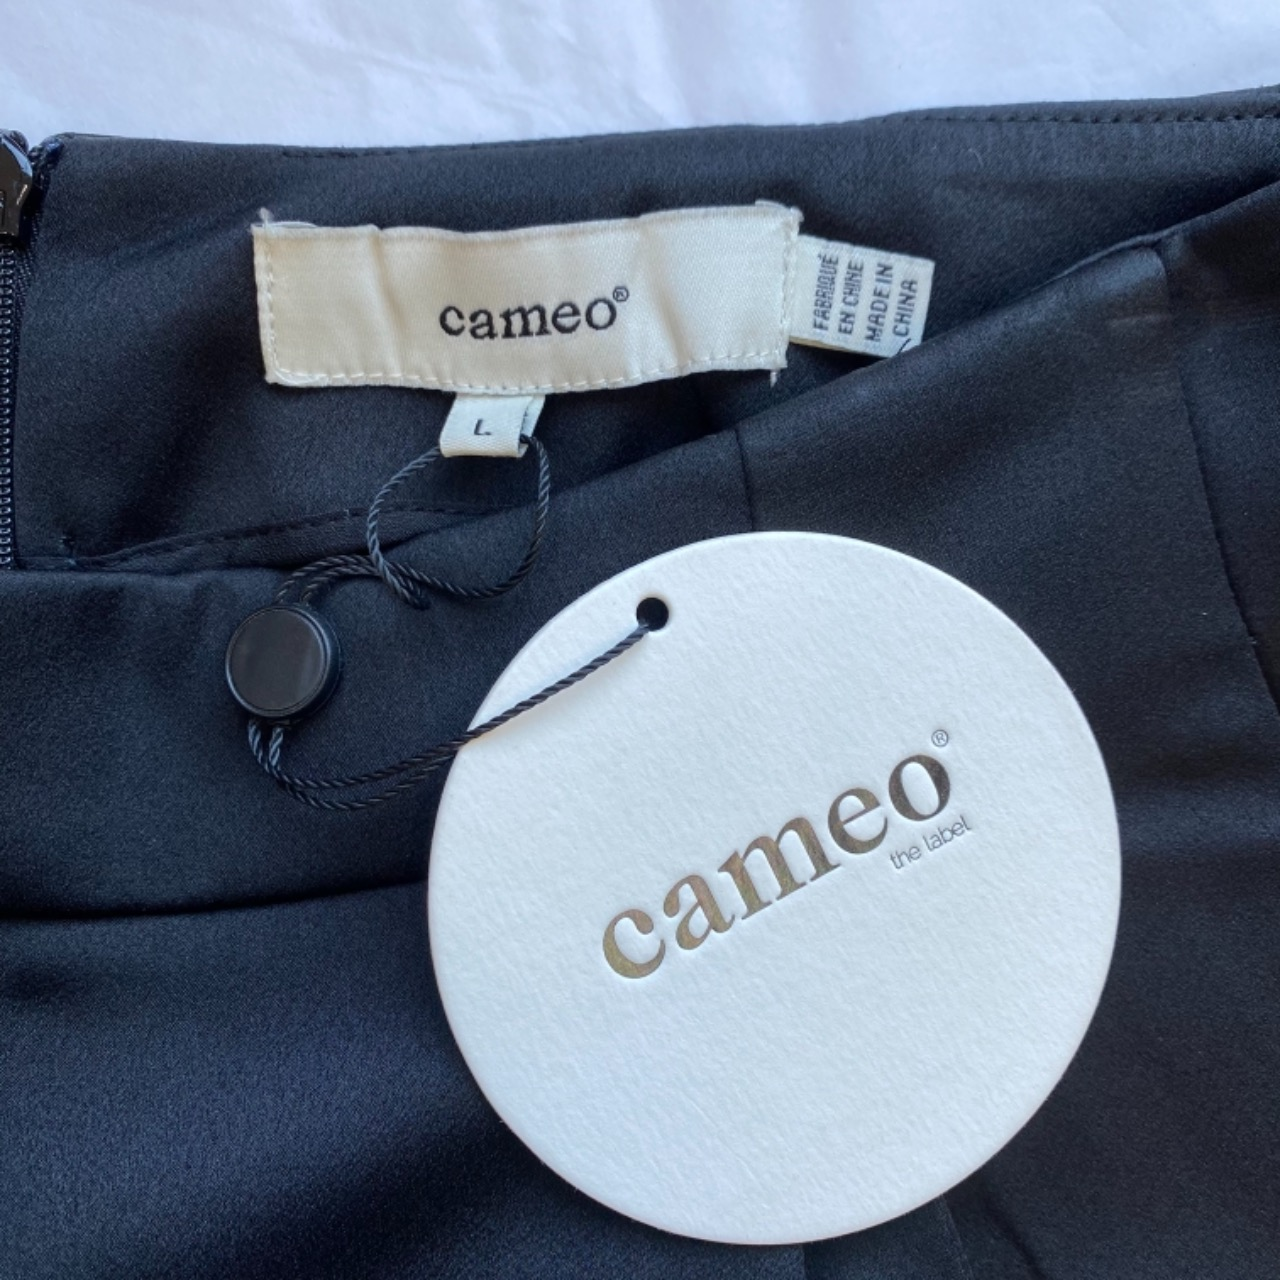 ** REDUCED ** Cameo The Label Women's Wide Leg Pants Size L Black - New With Tags